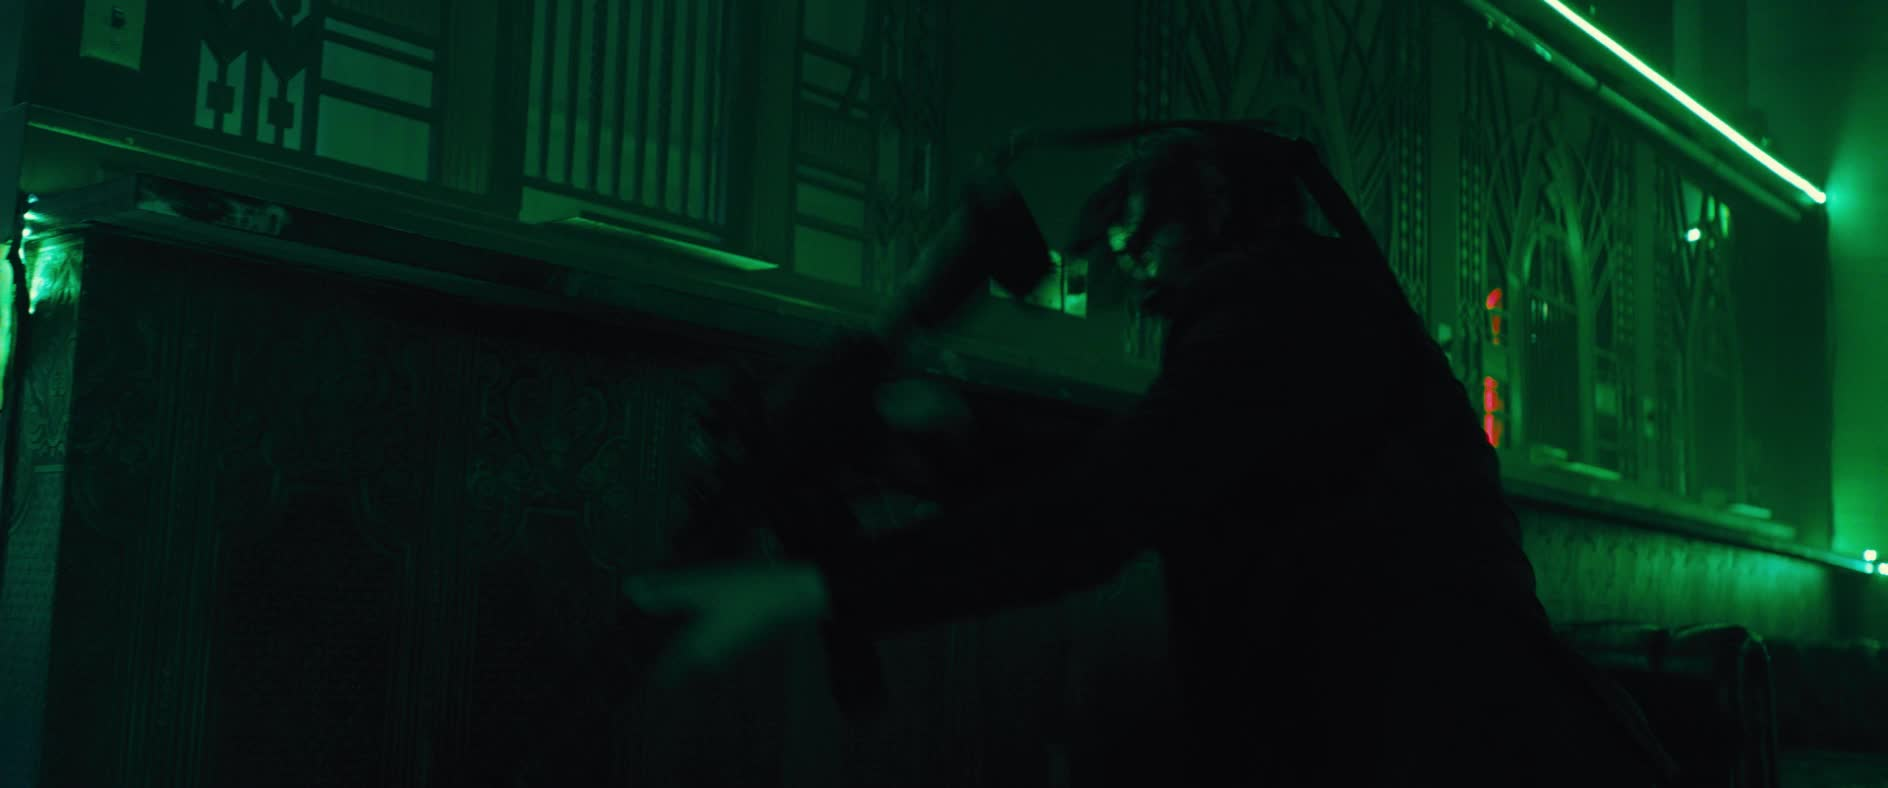 fight, gun, gun fight, john wick, john wick 3, john wick chapter 3, john wick chapter 3 parabellum, keanu reeves, shooting, John Wick Gun Fight GIFs